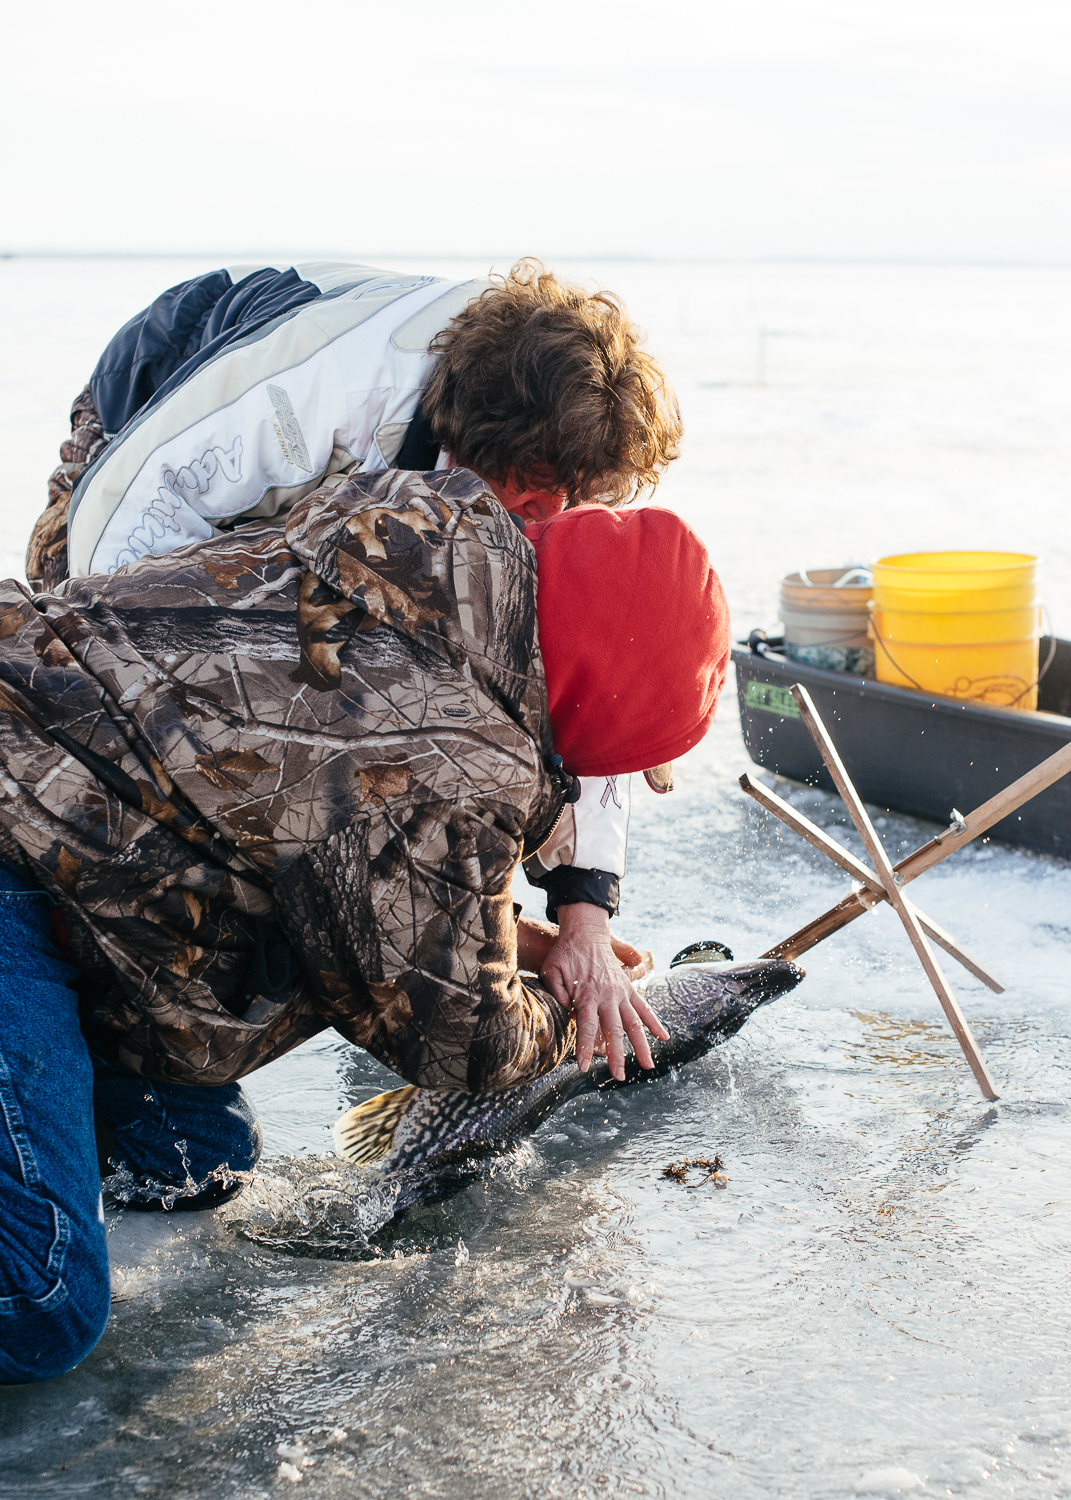 Bob and his wife struggle to keep the Northern Pike from slipping back into the water.